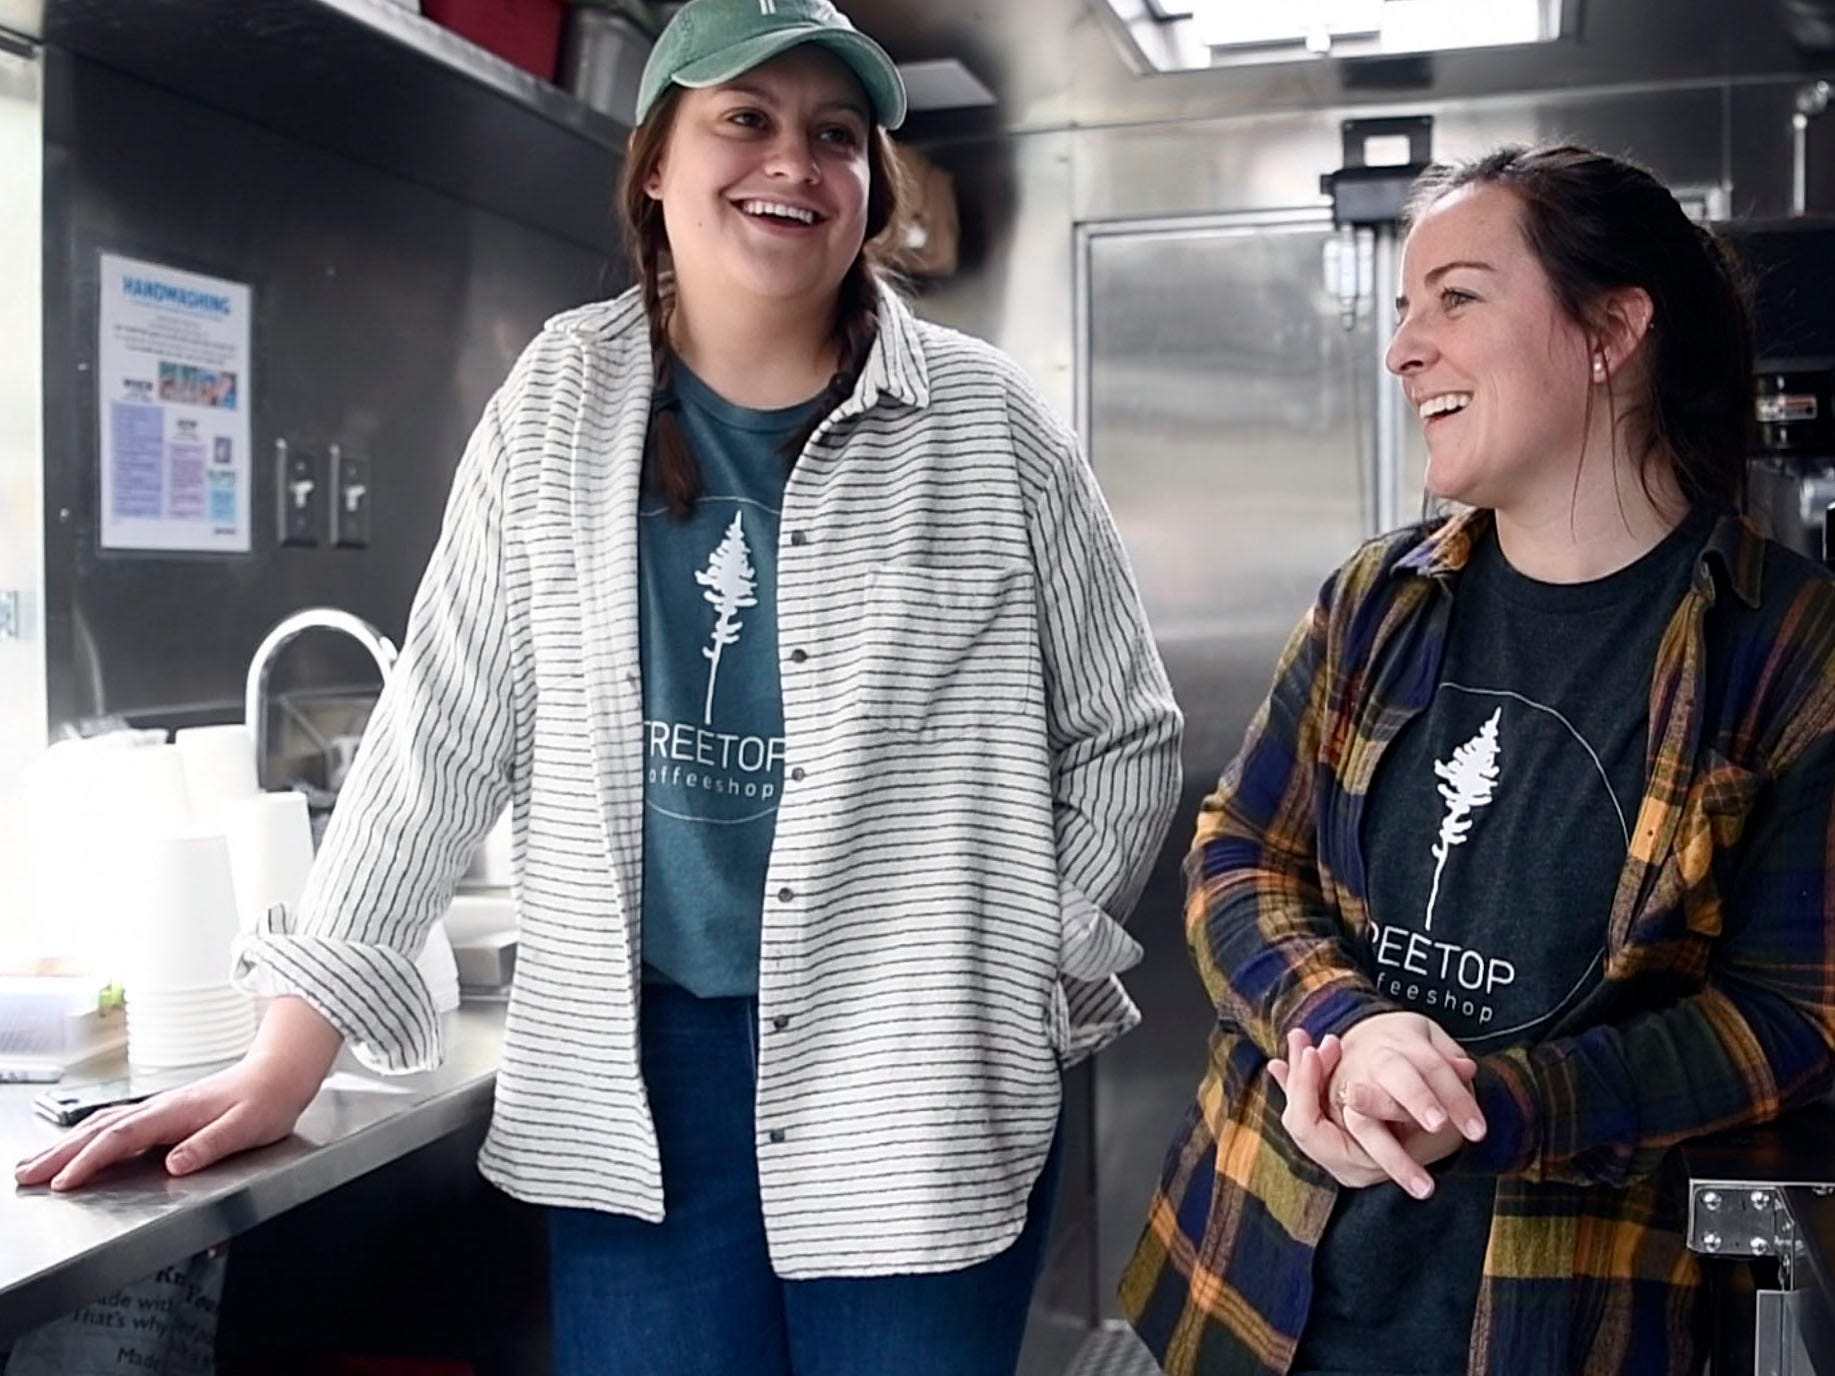 Rachel Casstevens, left, and Courtney Peters have opened a mobile coffee shop called Treetop Coffee Shop and are serving their first Sunday at Central Filling Station on Sunday, March 10, 2019.